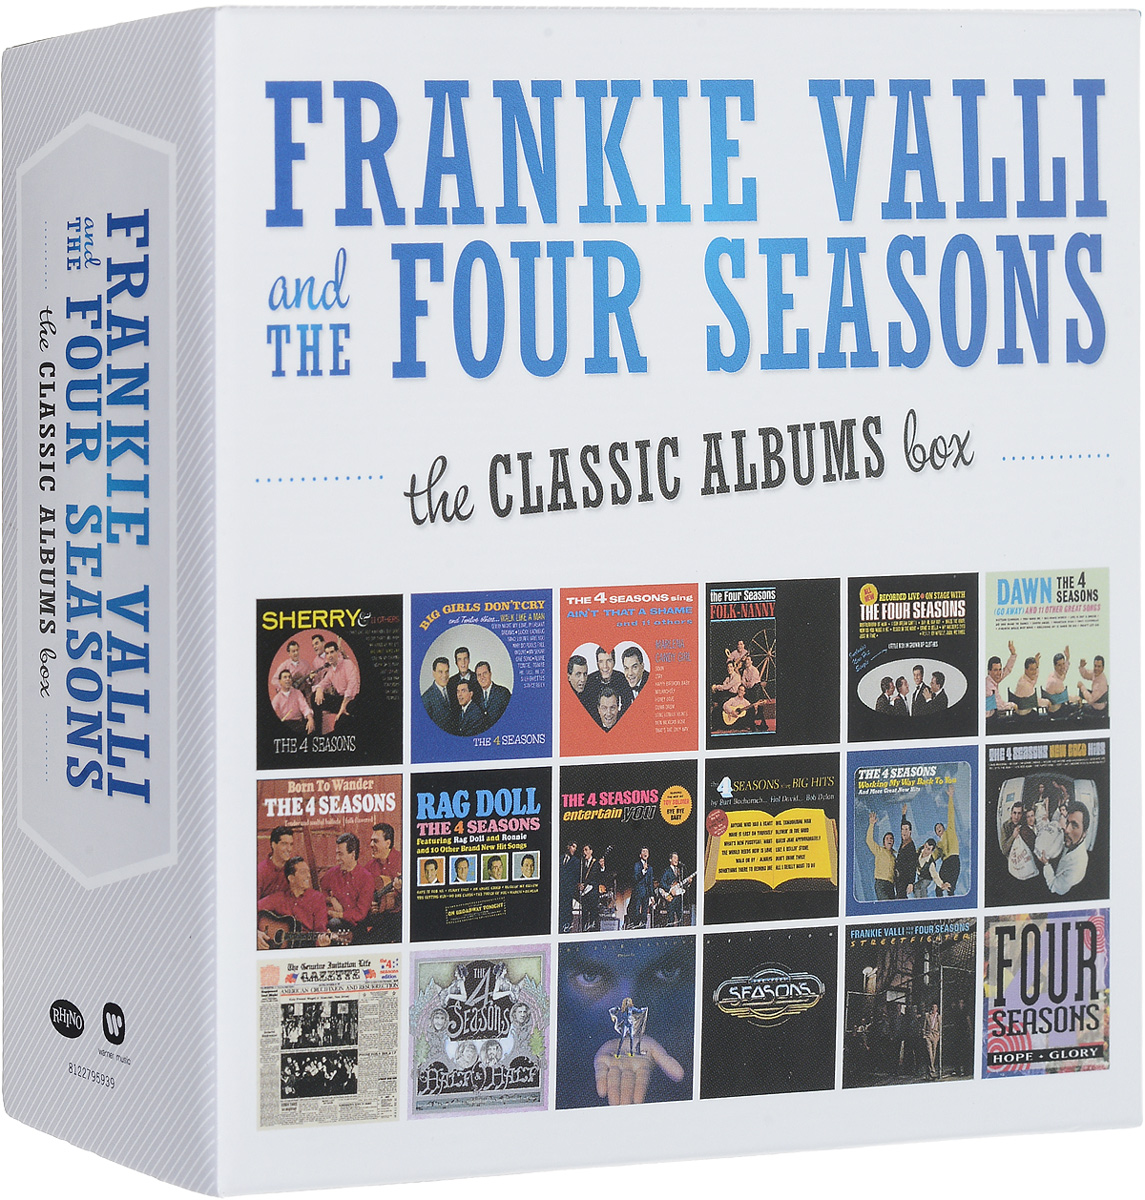 Фрэнки Вэлли,The Four Seasons Frankie Valli & The Four Seasons. The The Classic Albums Box (18 CD) bandai фигурка kantai collection the four seasons of chinjufu naval base akizuki